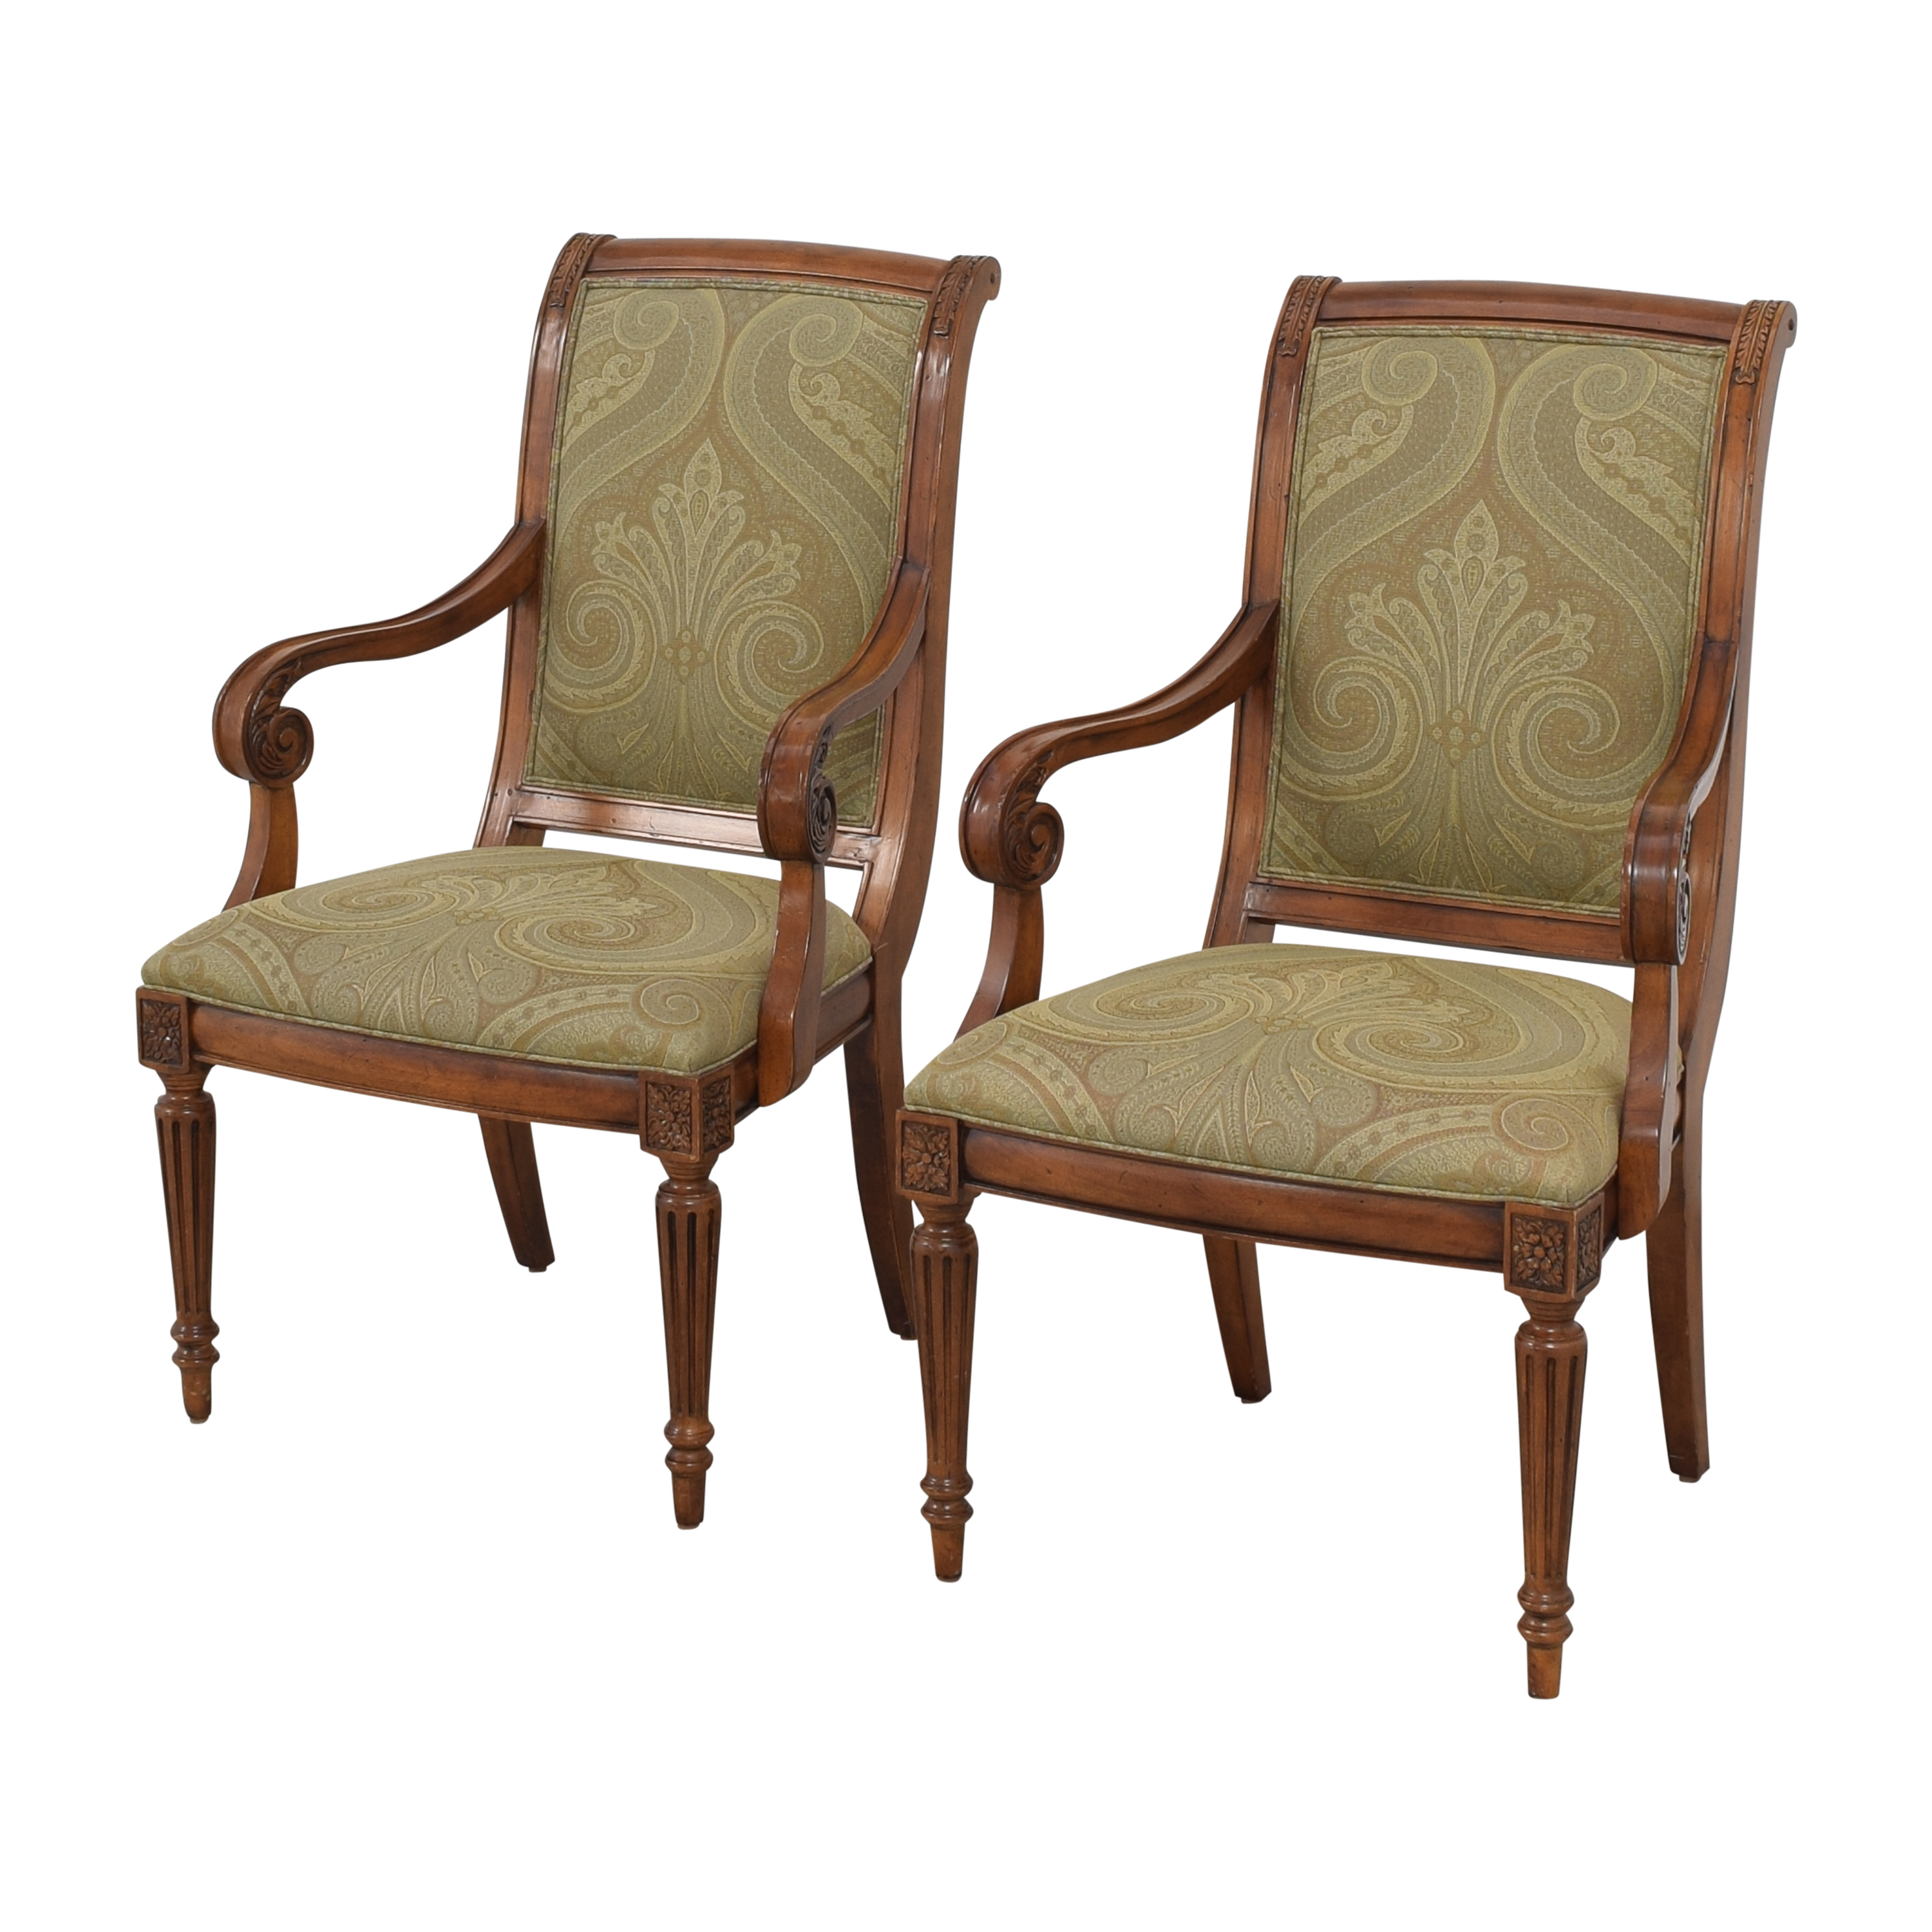 Ethan Allen Ethan Allen Townhouse Addison Dining Arm Chairs Dining Chairs